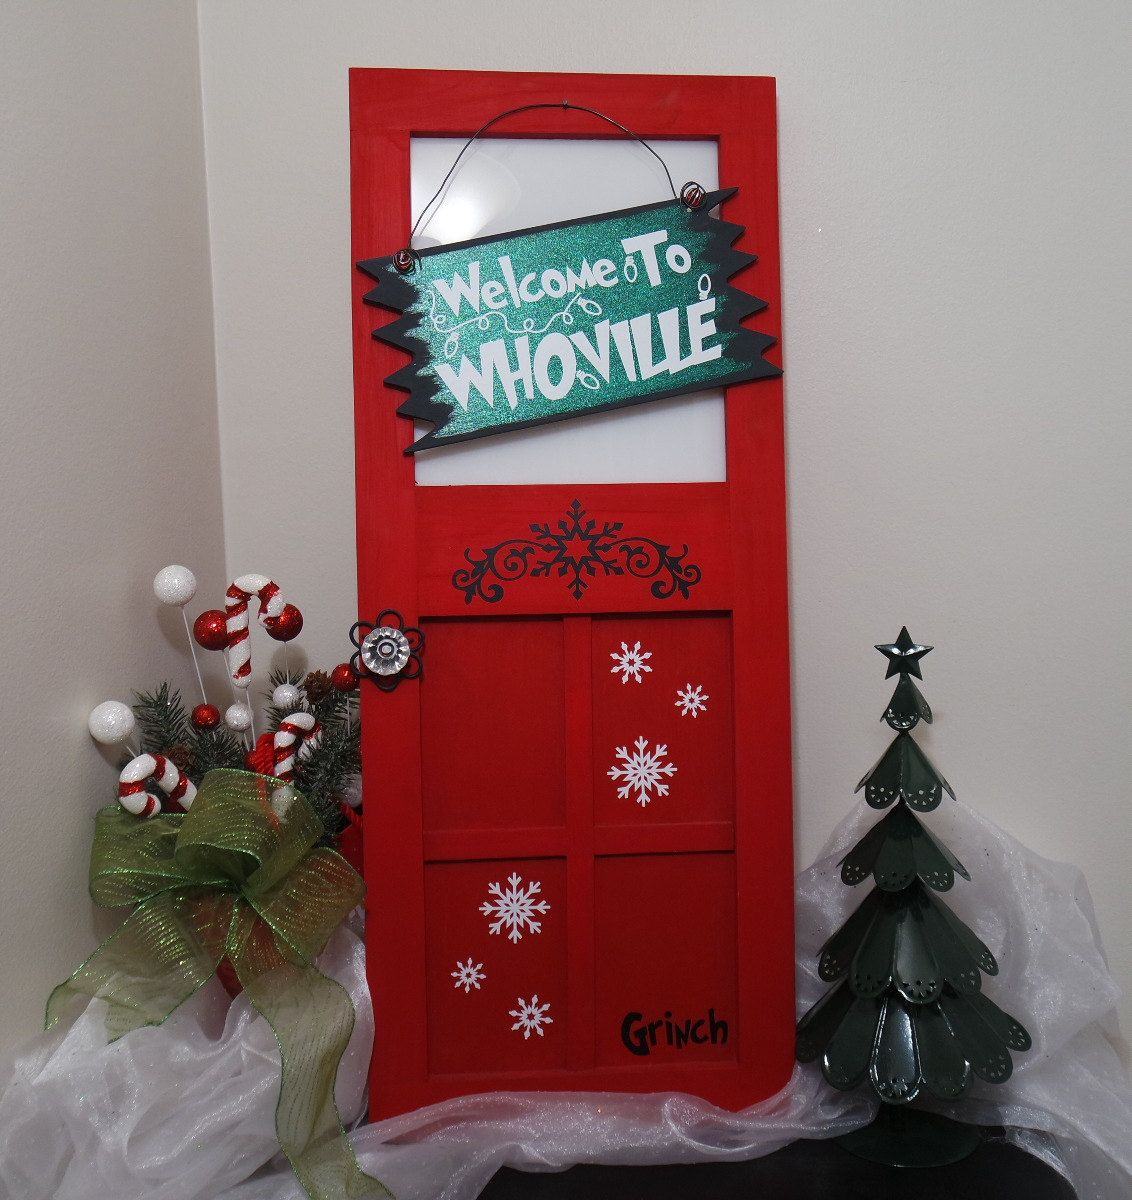 Christmas Decorations The Grinch: Image From Http://gunedair.net/wp-content/uploads/2015/10